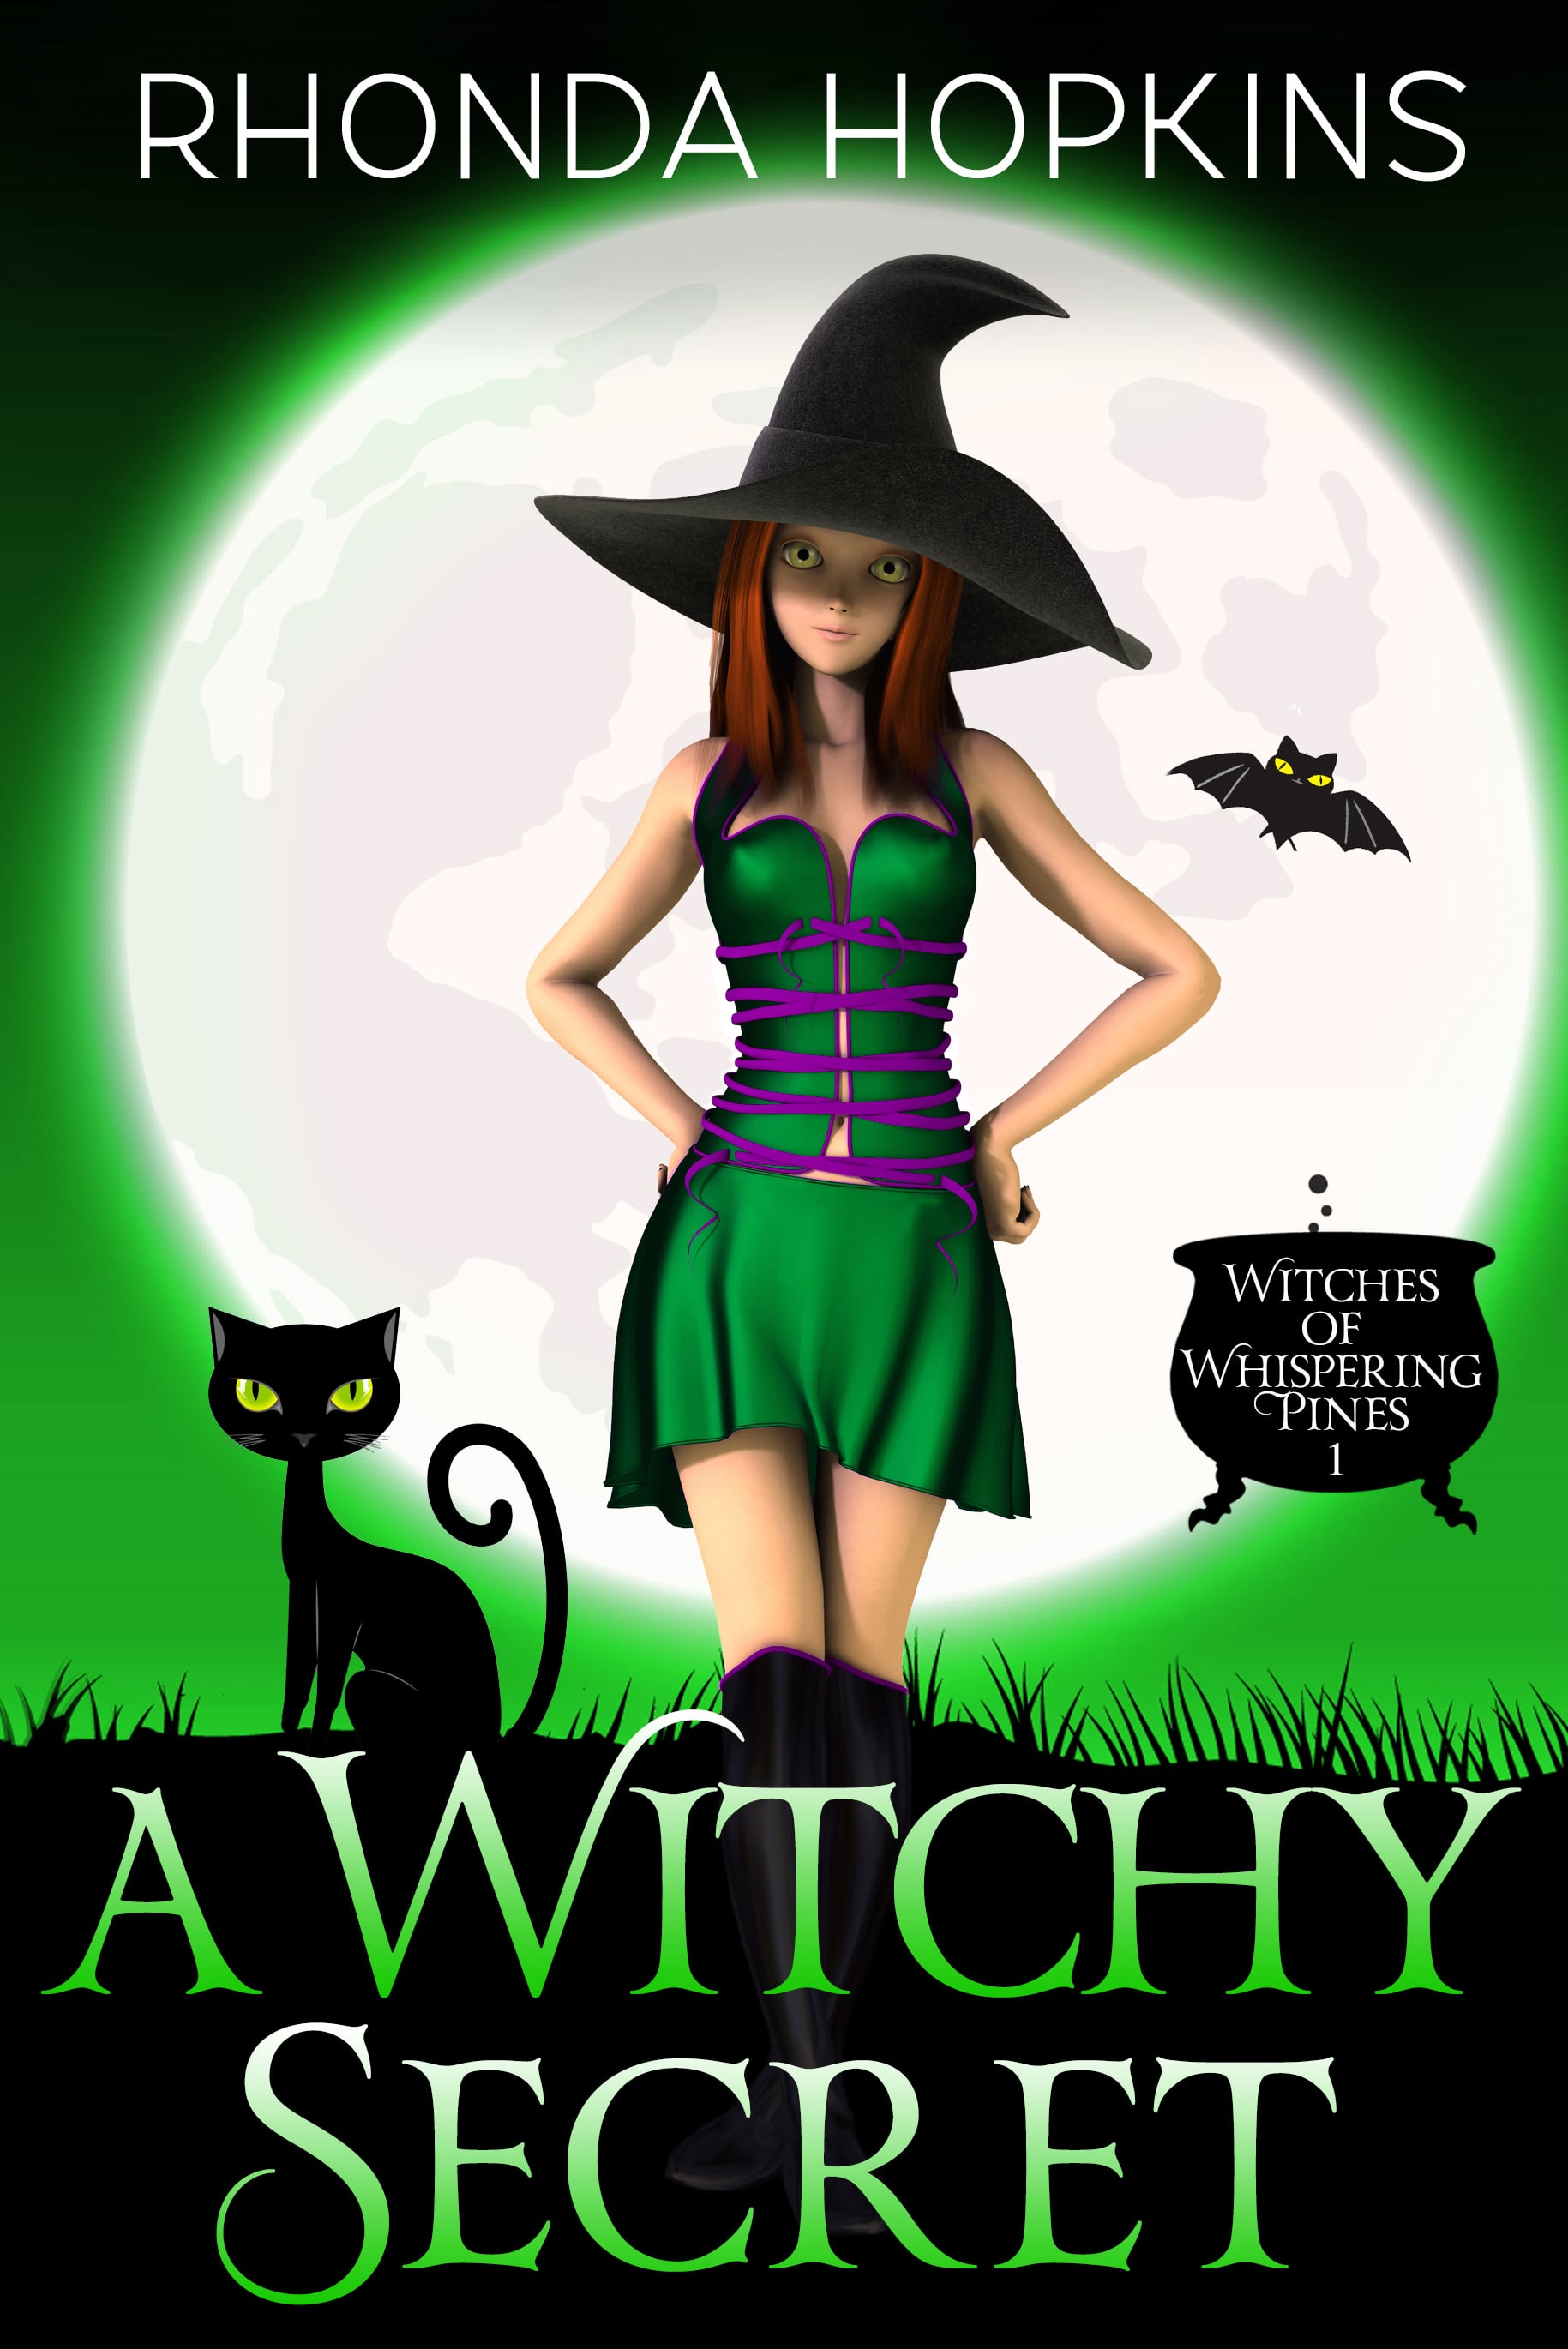 Teen Girl in Witches hat wearing a purple dress and black boots, with her hands raised in surprise in front of a large moon on a purple background. There's a black cauldron with text: Witches of Whispering Pines, and there is a black cat.on the other side of the girl. Title: A Witchy Surprise, Author: Rhonda Hopkins